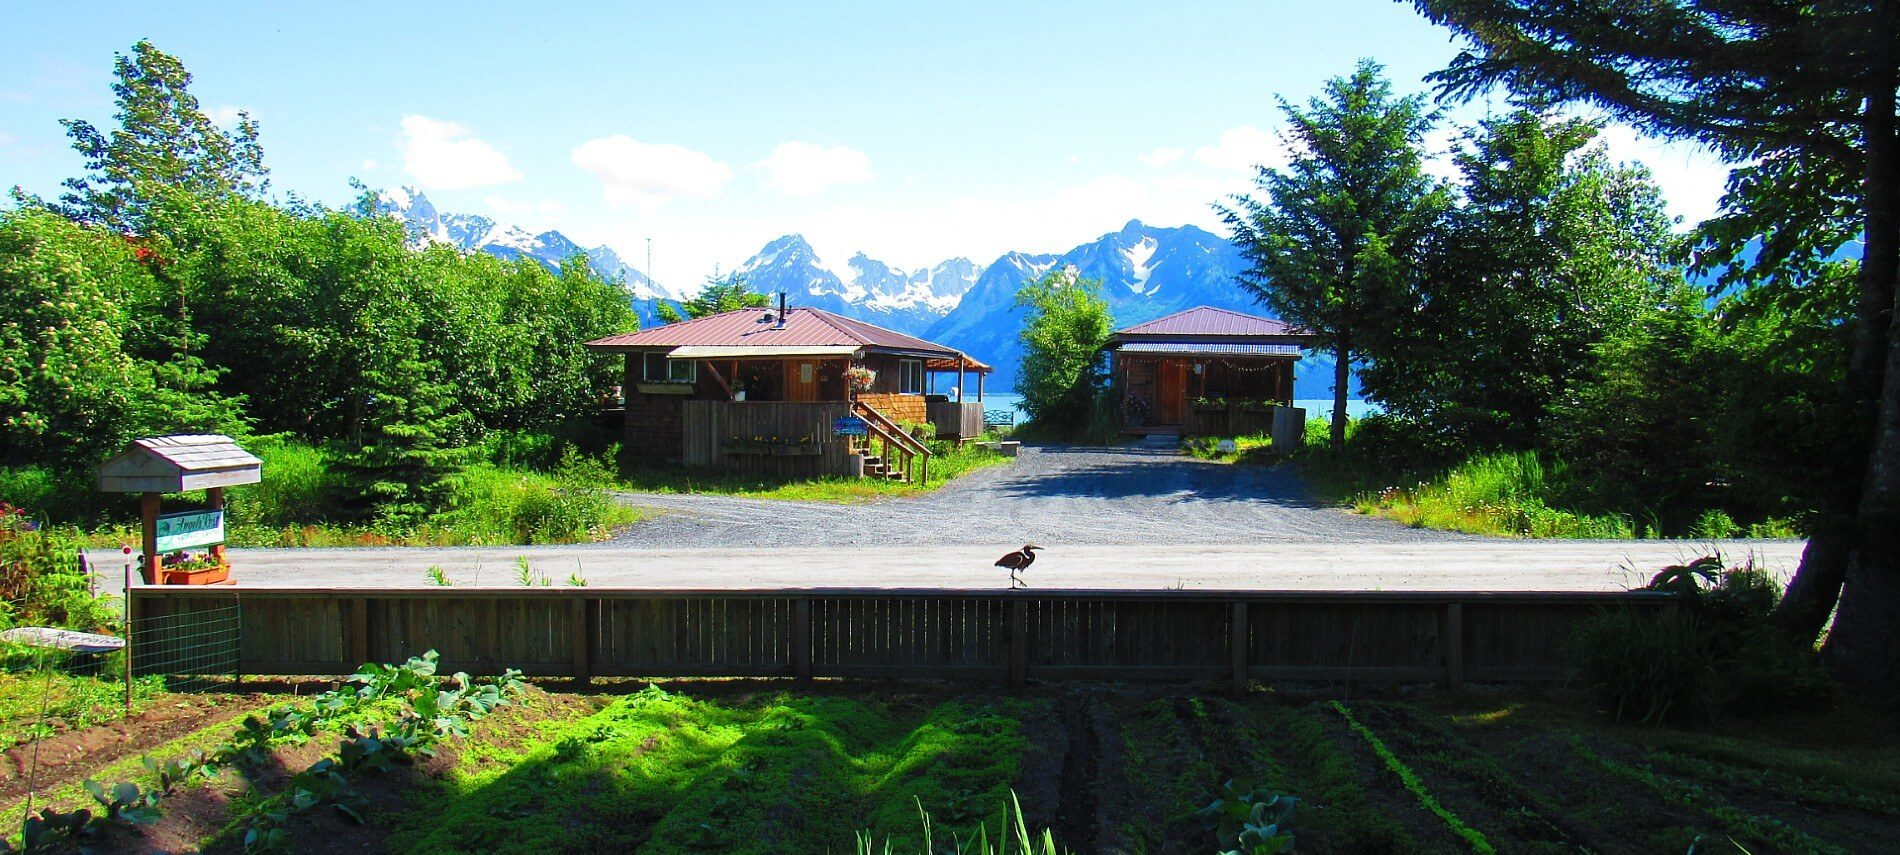 Garden behind long fence with two small brown cabins across the road and mountain range in the distance